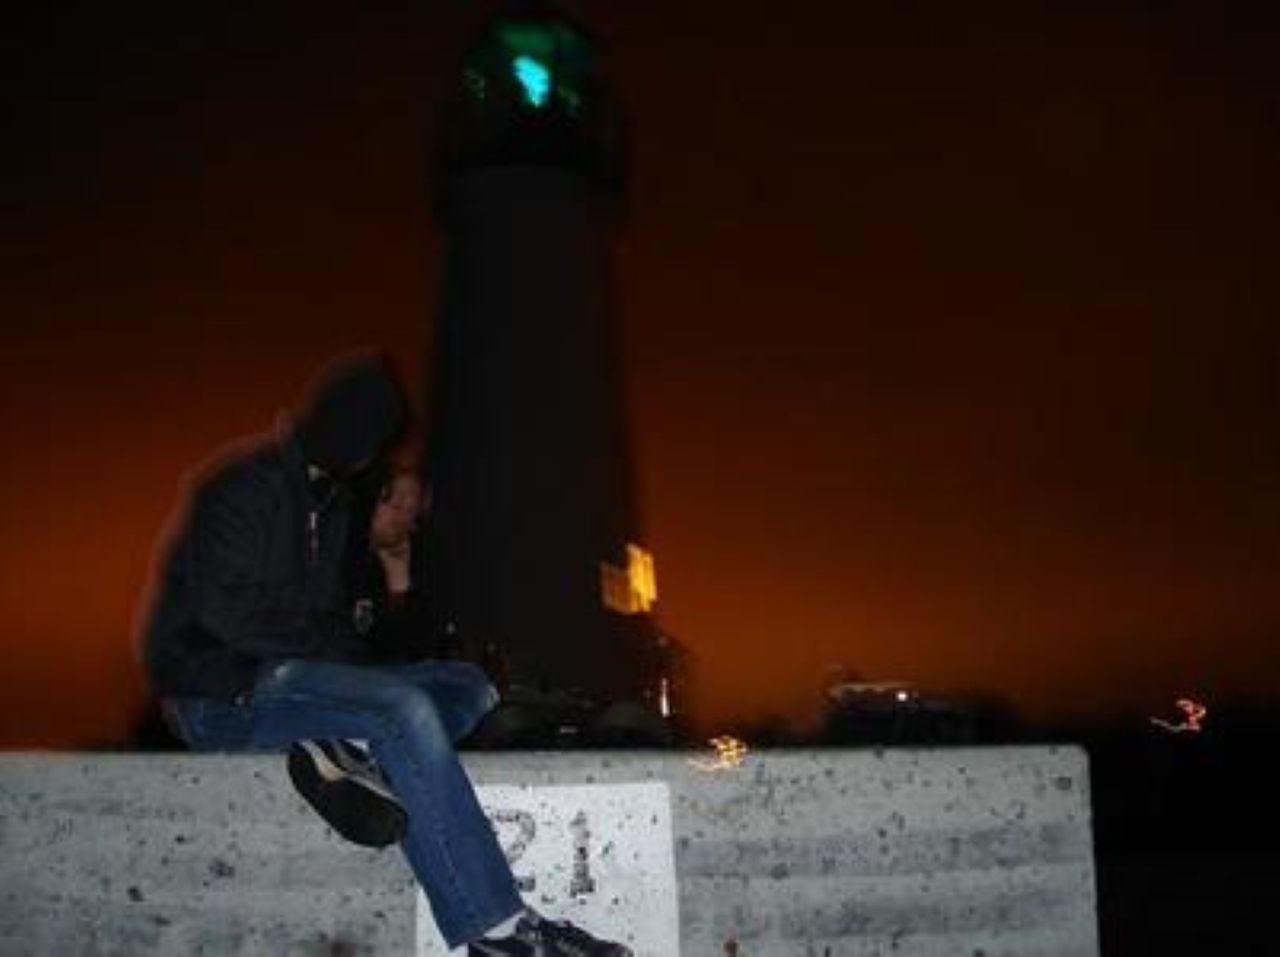 everything arpund me is in motion and im the only thing that doesn't seem to move..... 21 Blurred Background California Lighthouse Casual Clothing Dark Focus On Foreground Glowing Illuminated Leisure Activity Lifestyles Lighthouse Lighthouse At Night Lighting Equipment Lit Night Orange Hue Selective Focus Unrecognizable Person